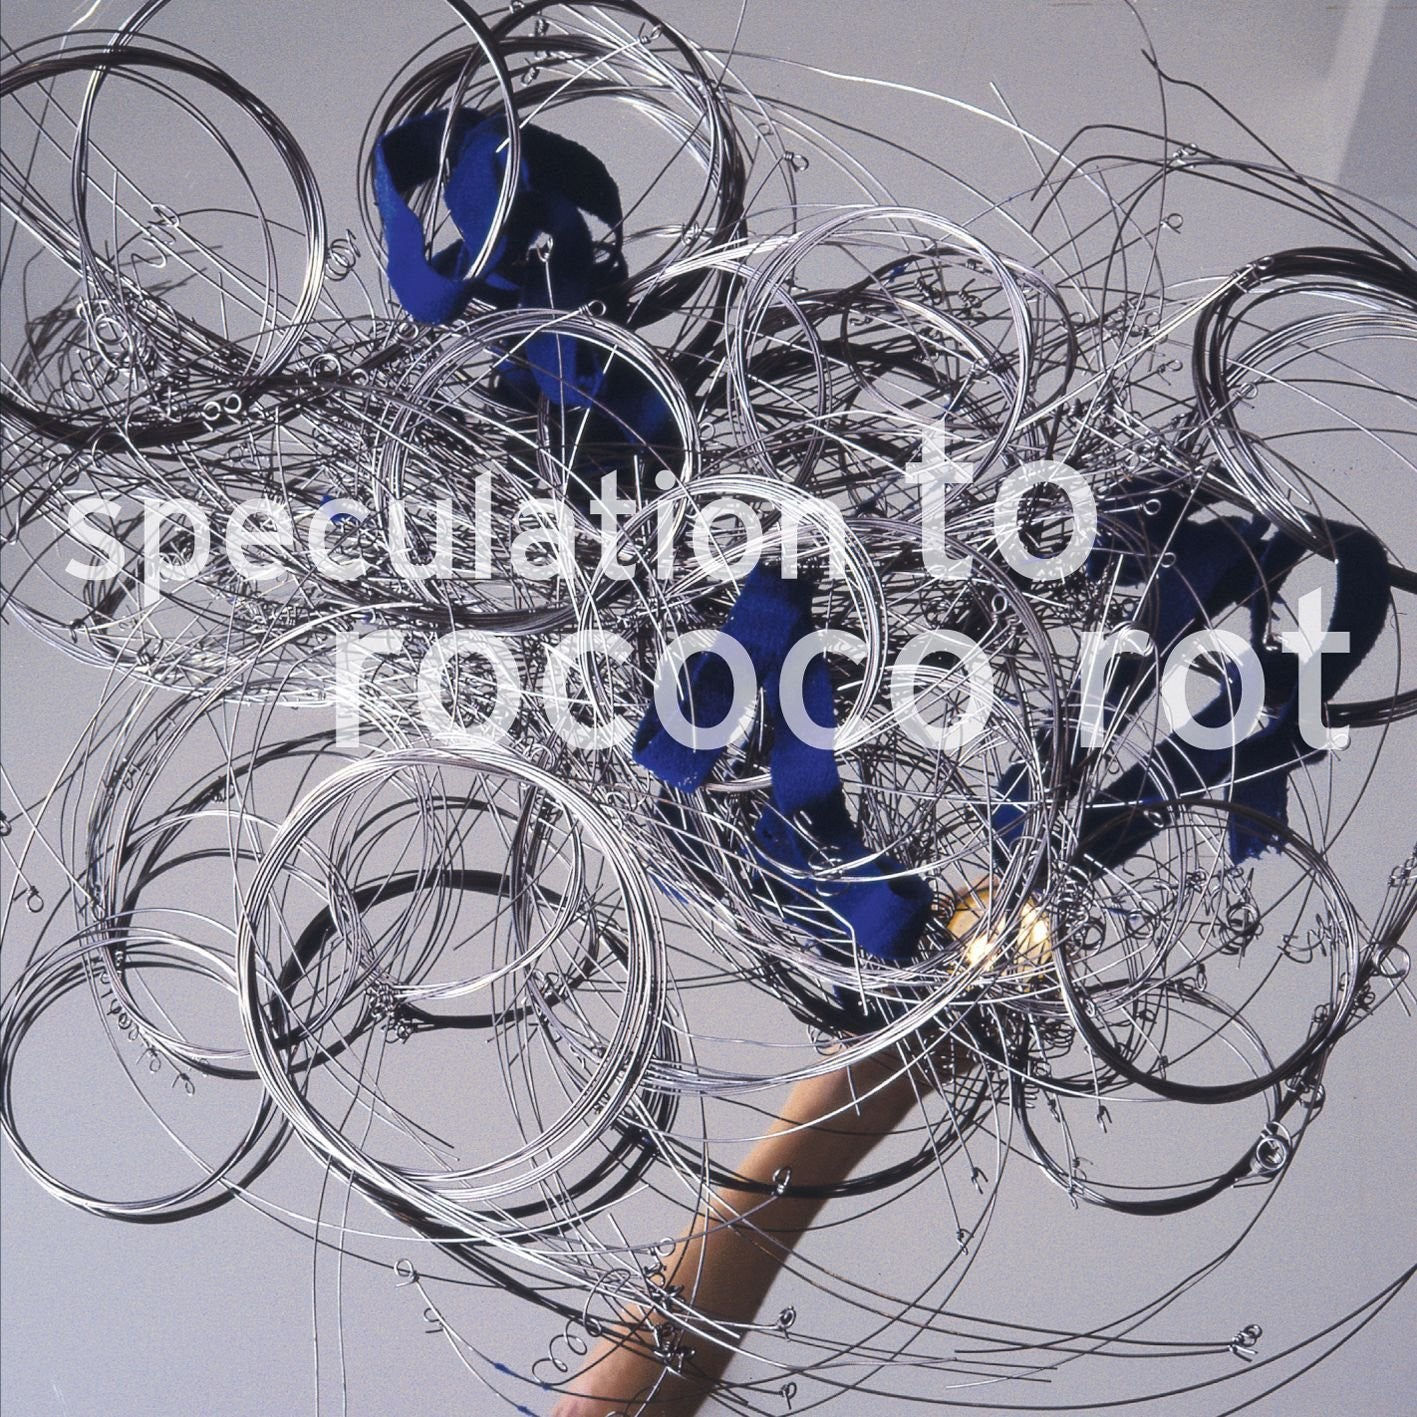 To Rococo Rot -Speculation (import)